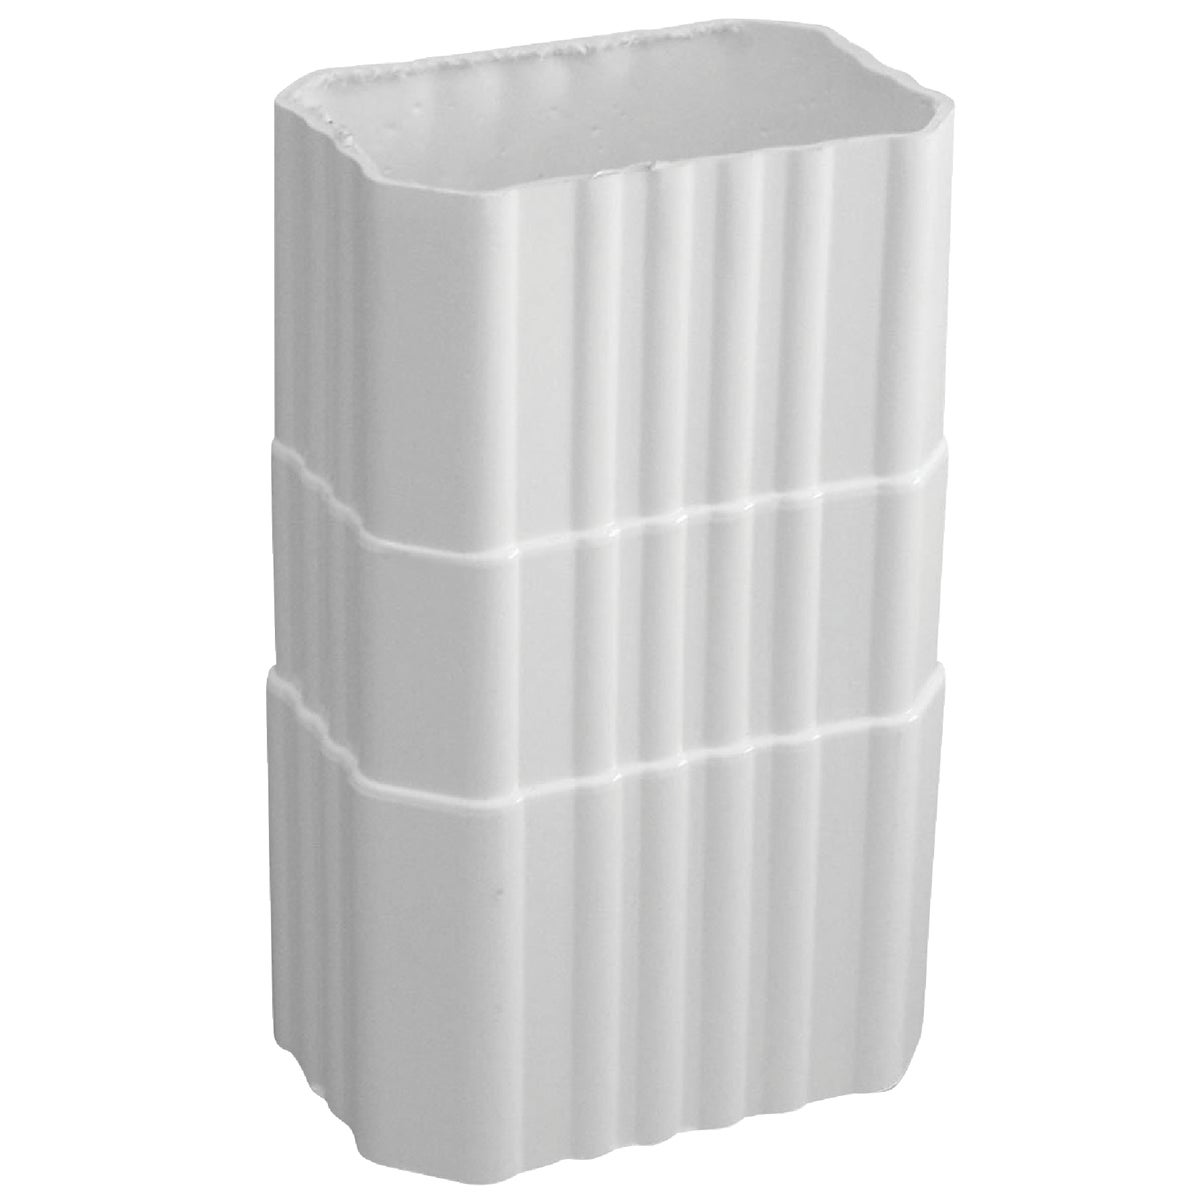 2X3WHT DOWNSPOUT COUPLER - AW203 by Genova Products